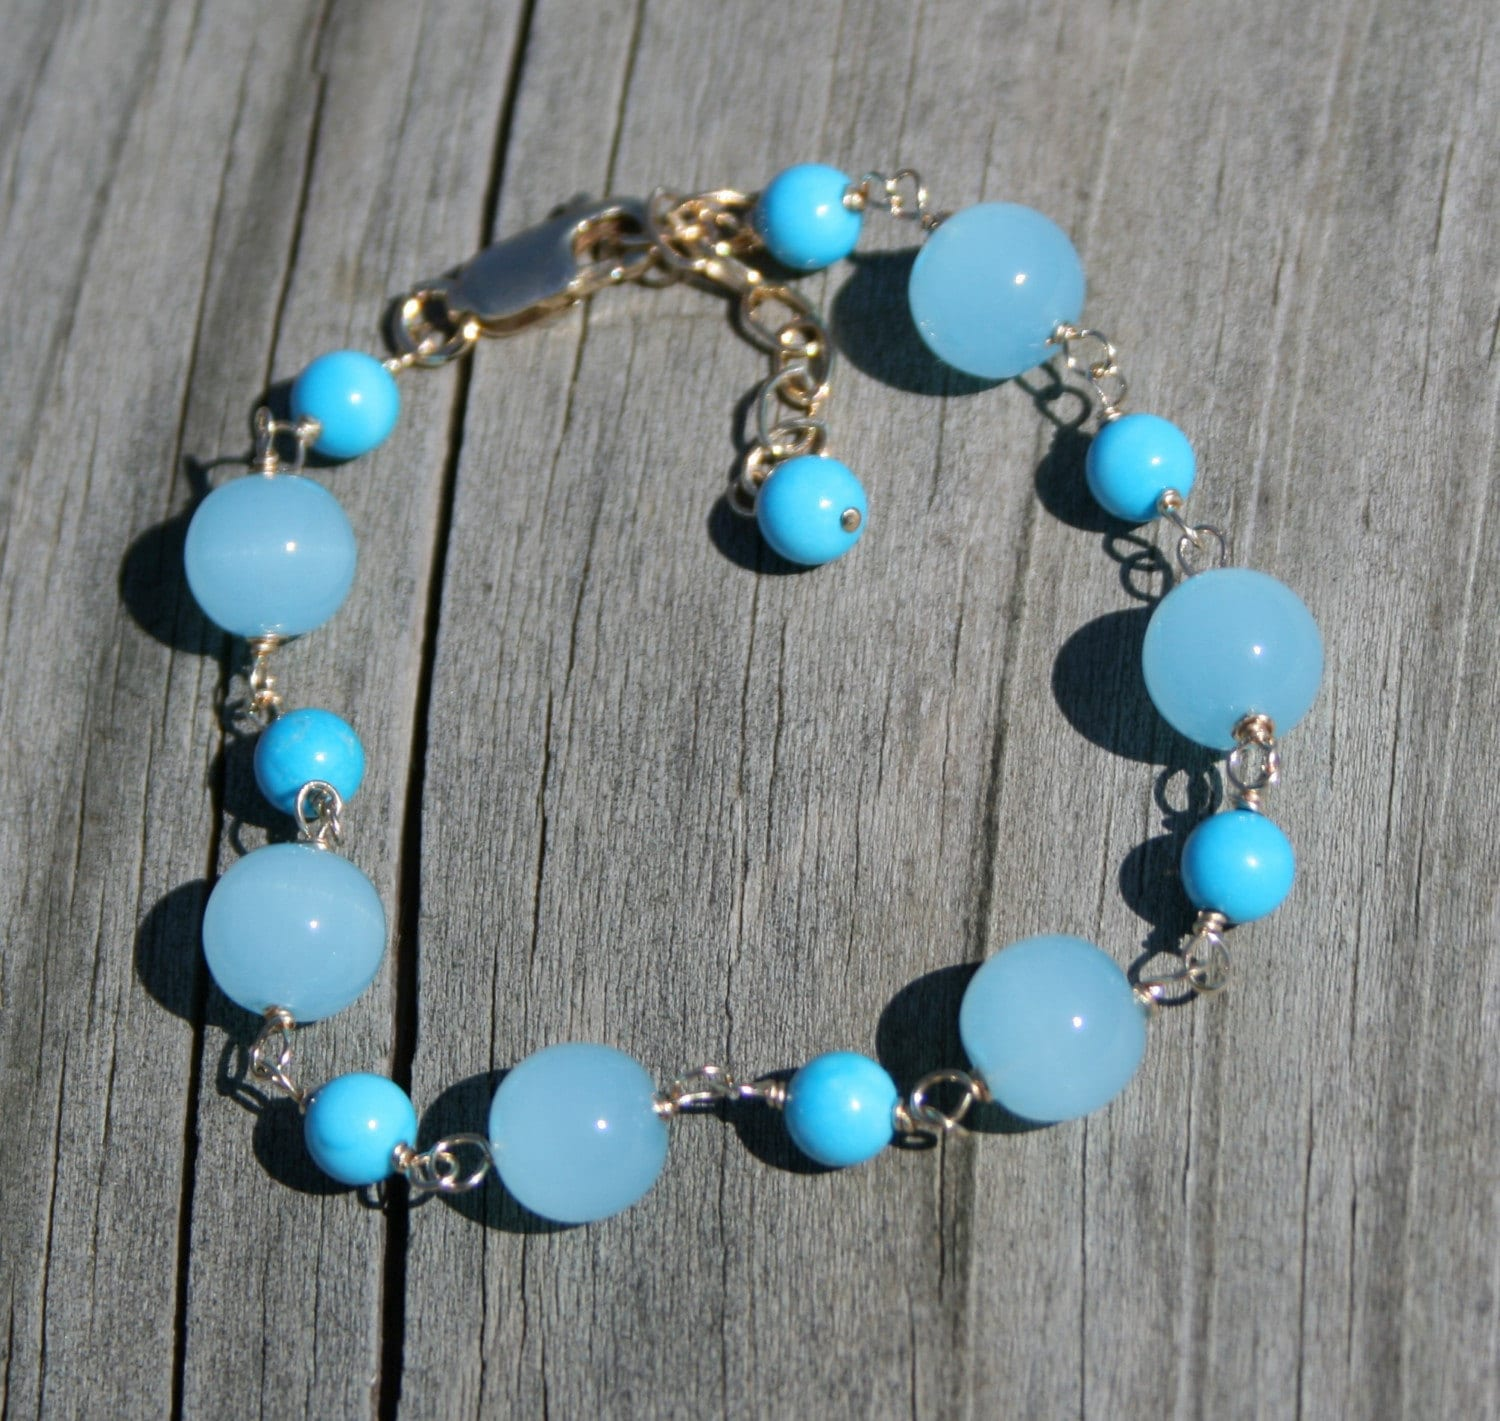 http://www.etsy.com/view_listing.php?listing_id=12649932&ref=sr_gallery_5&&ga_search_query=blue&ga_search_type=handmade&ga_page=69&includes[]=tags&includes[]=title